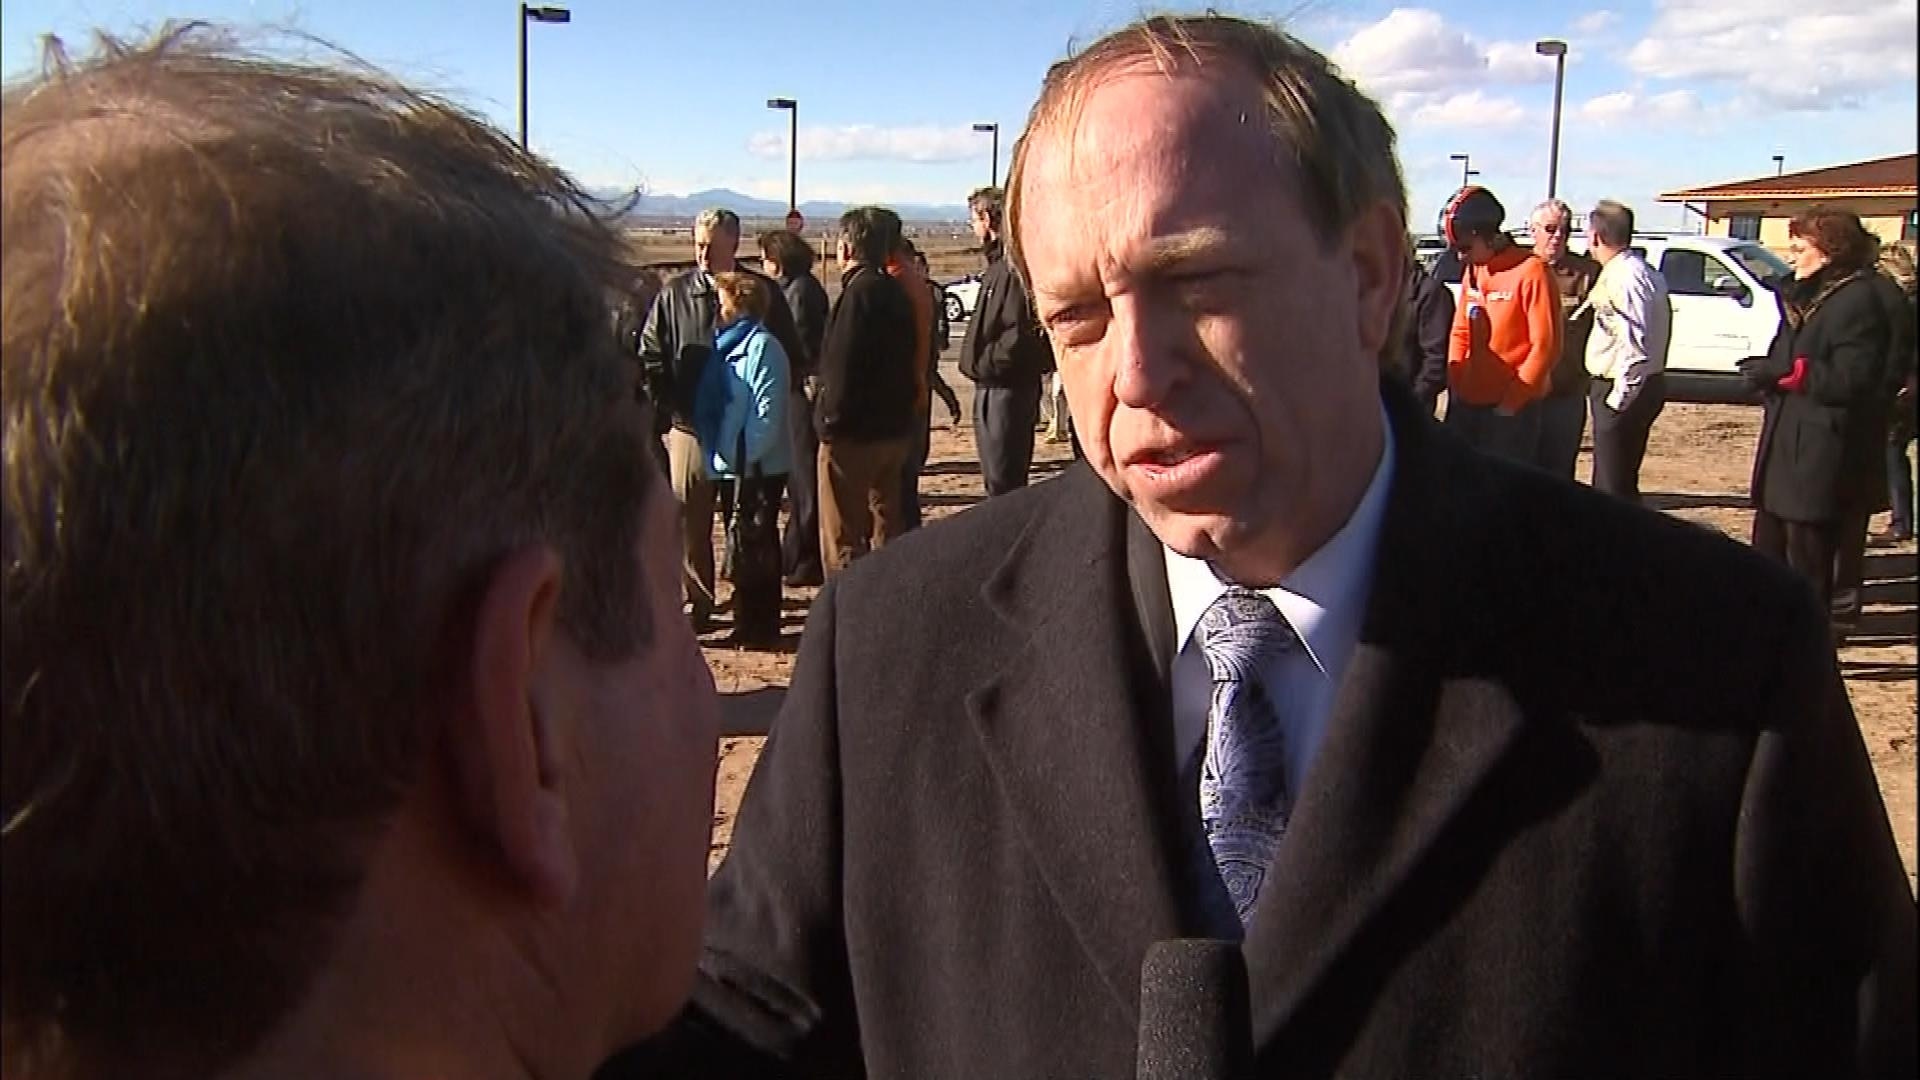 CBS4's Rick Sallinger talks with Colorado Attorney General John Suthers about the offers (credit: CBS)